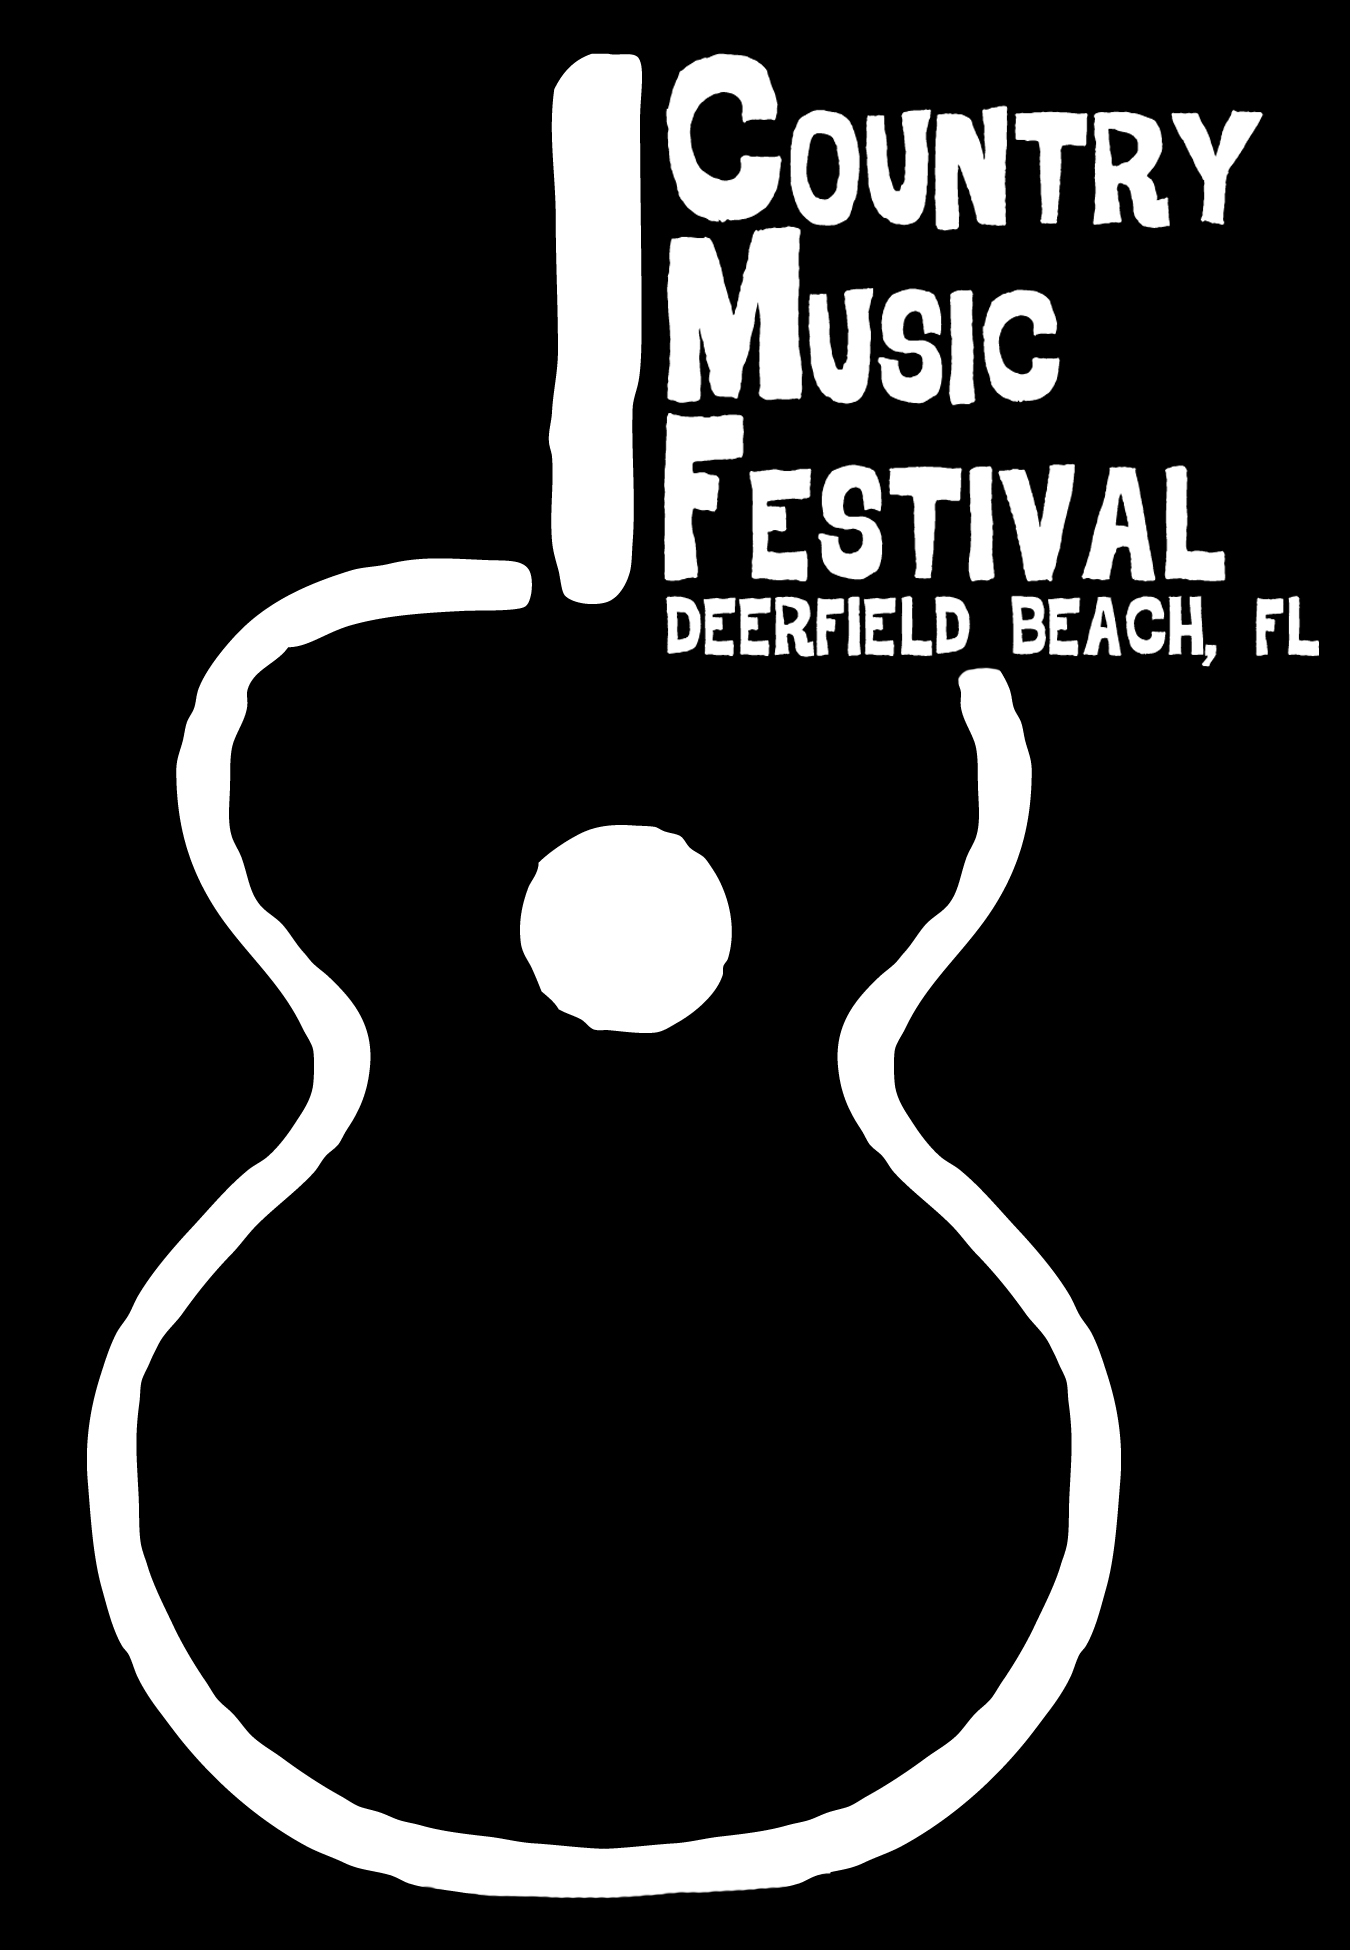 Country Music Festival Logo.jpg